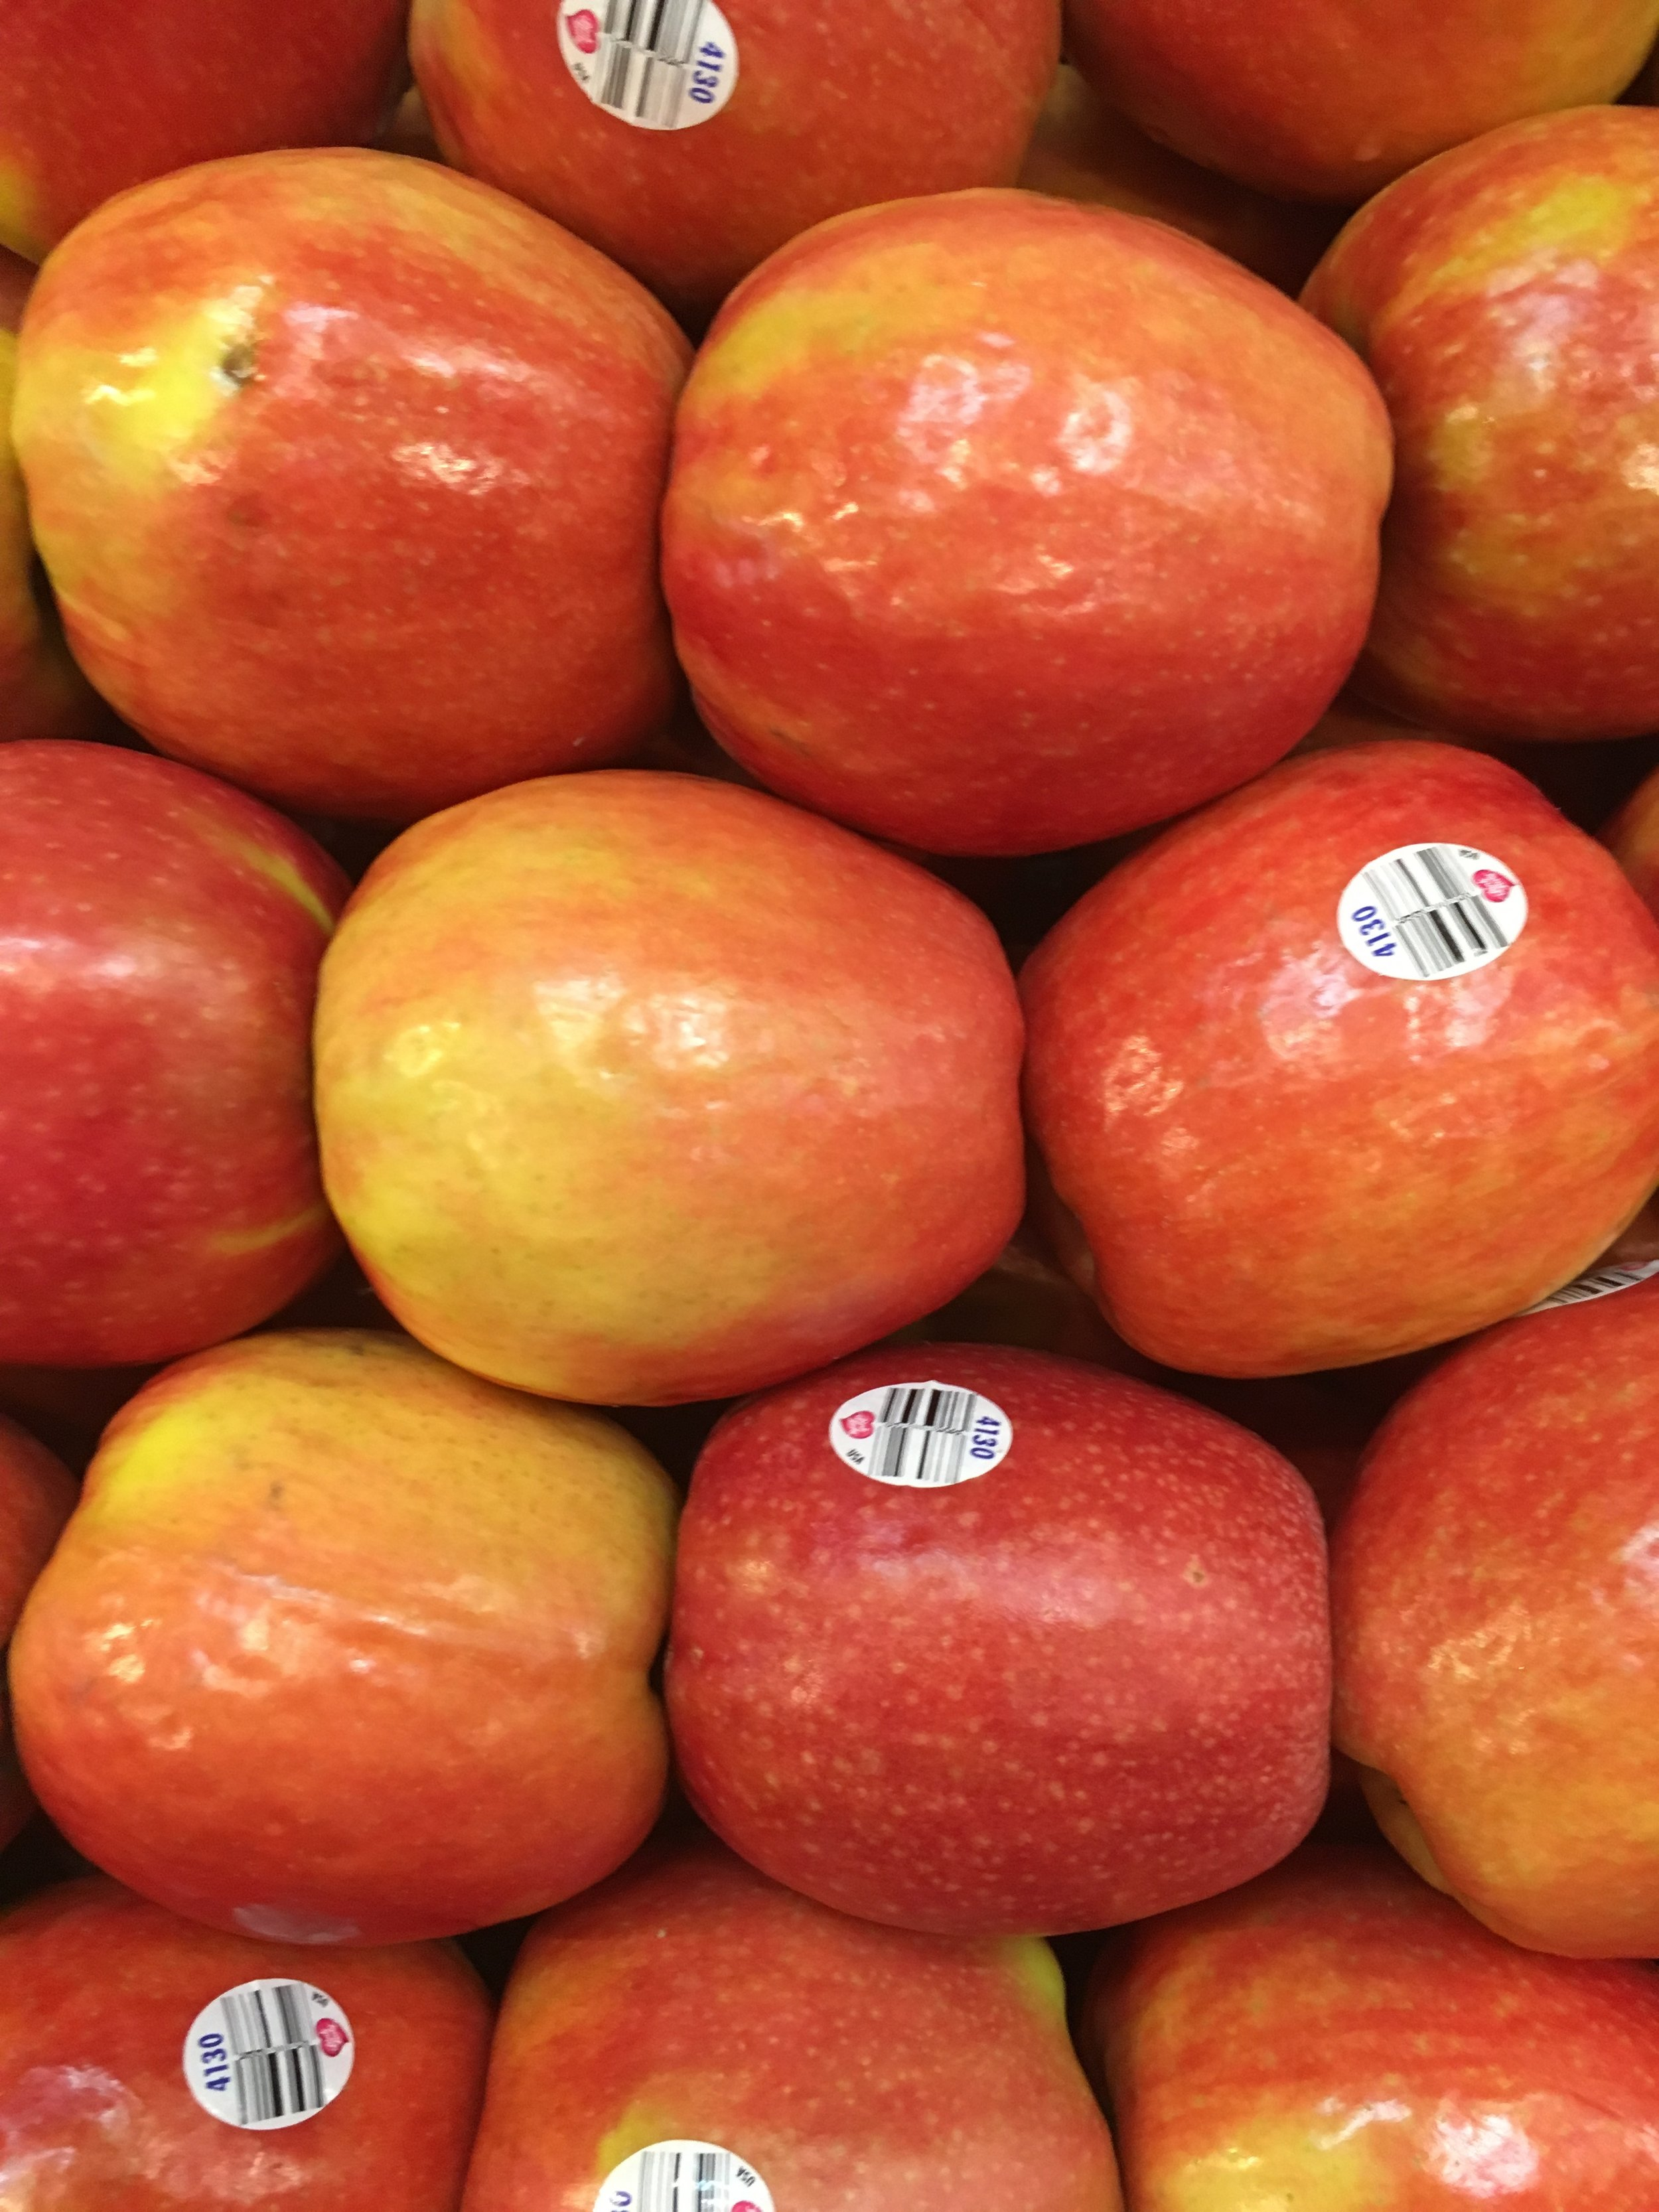 Organic apples at Russo's